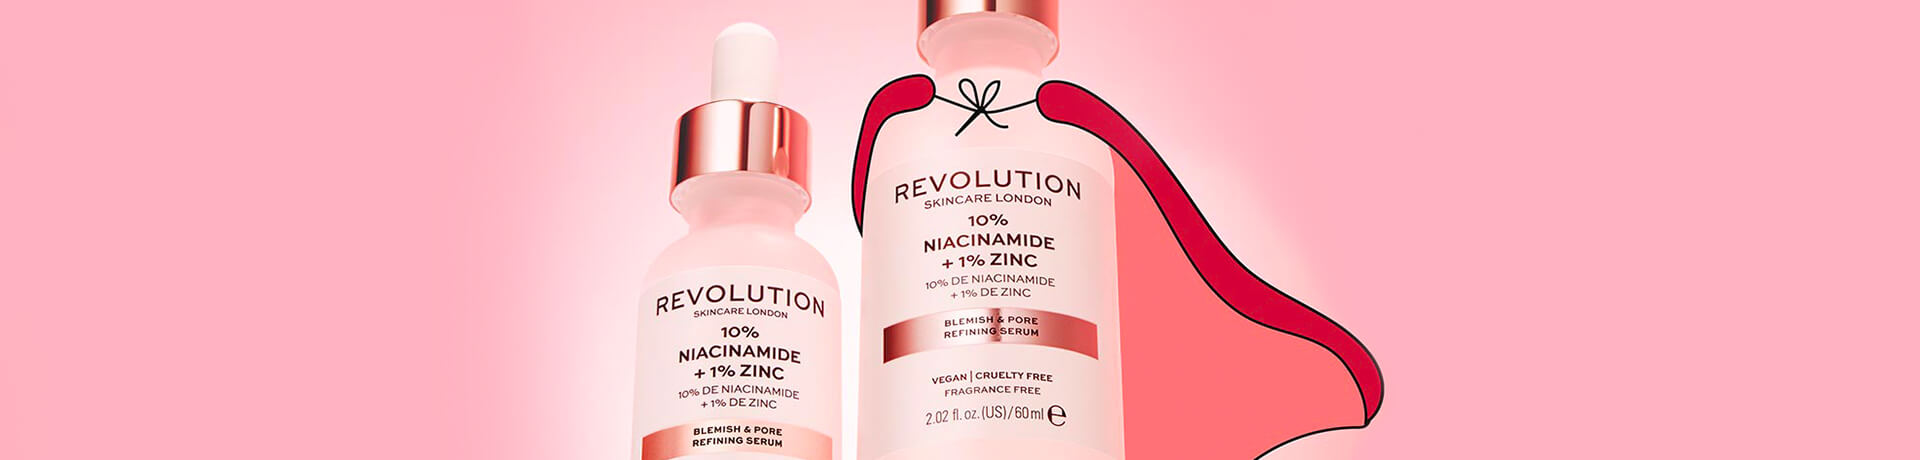 What is Niacinamide? The best skincare for pores